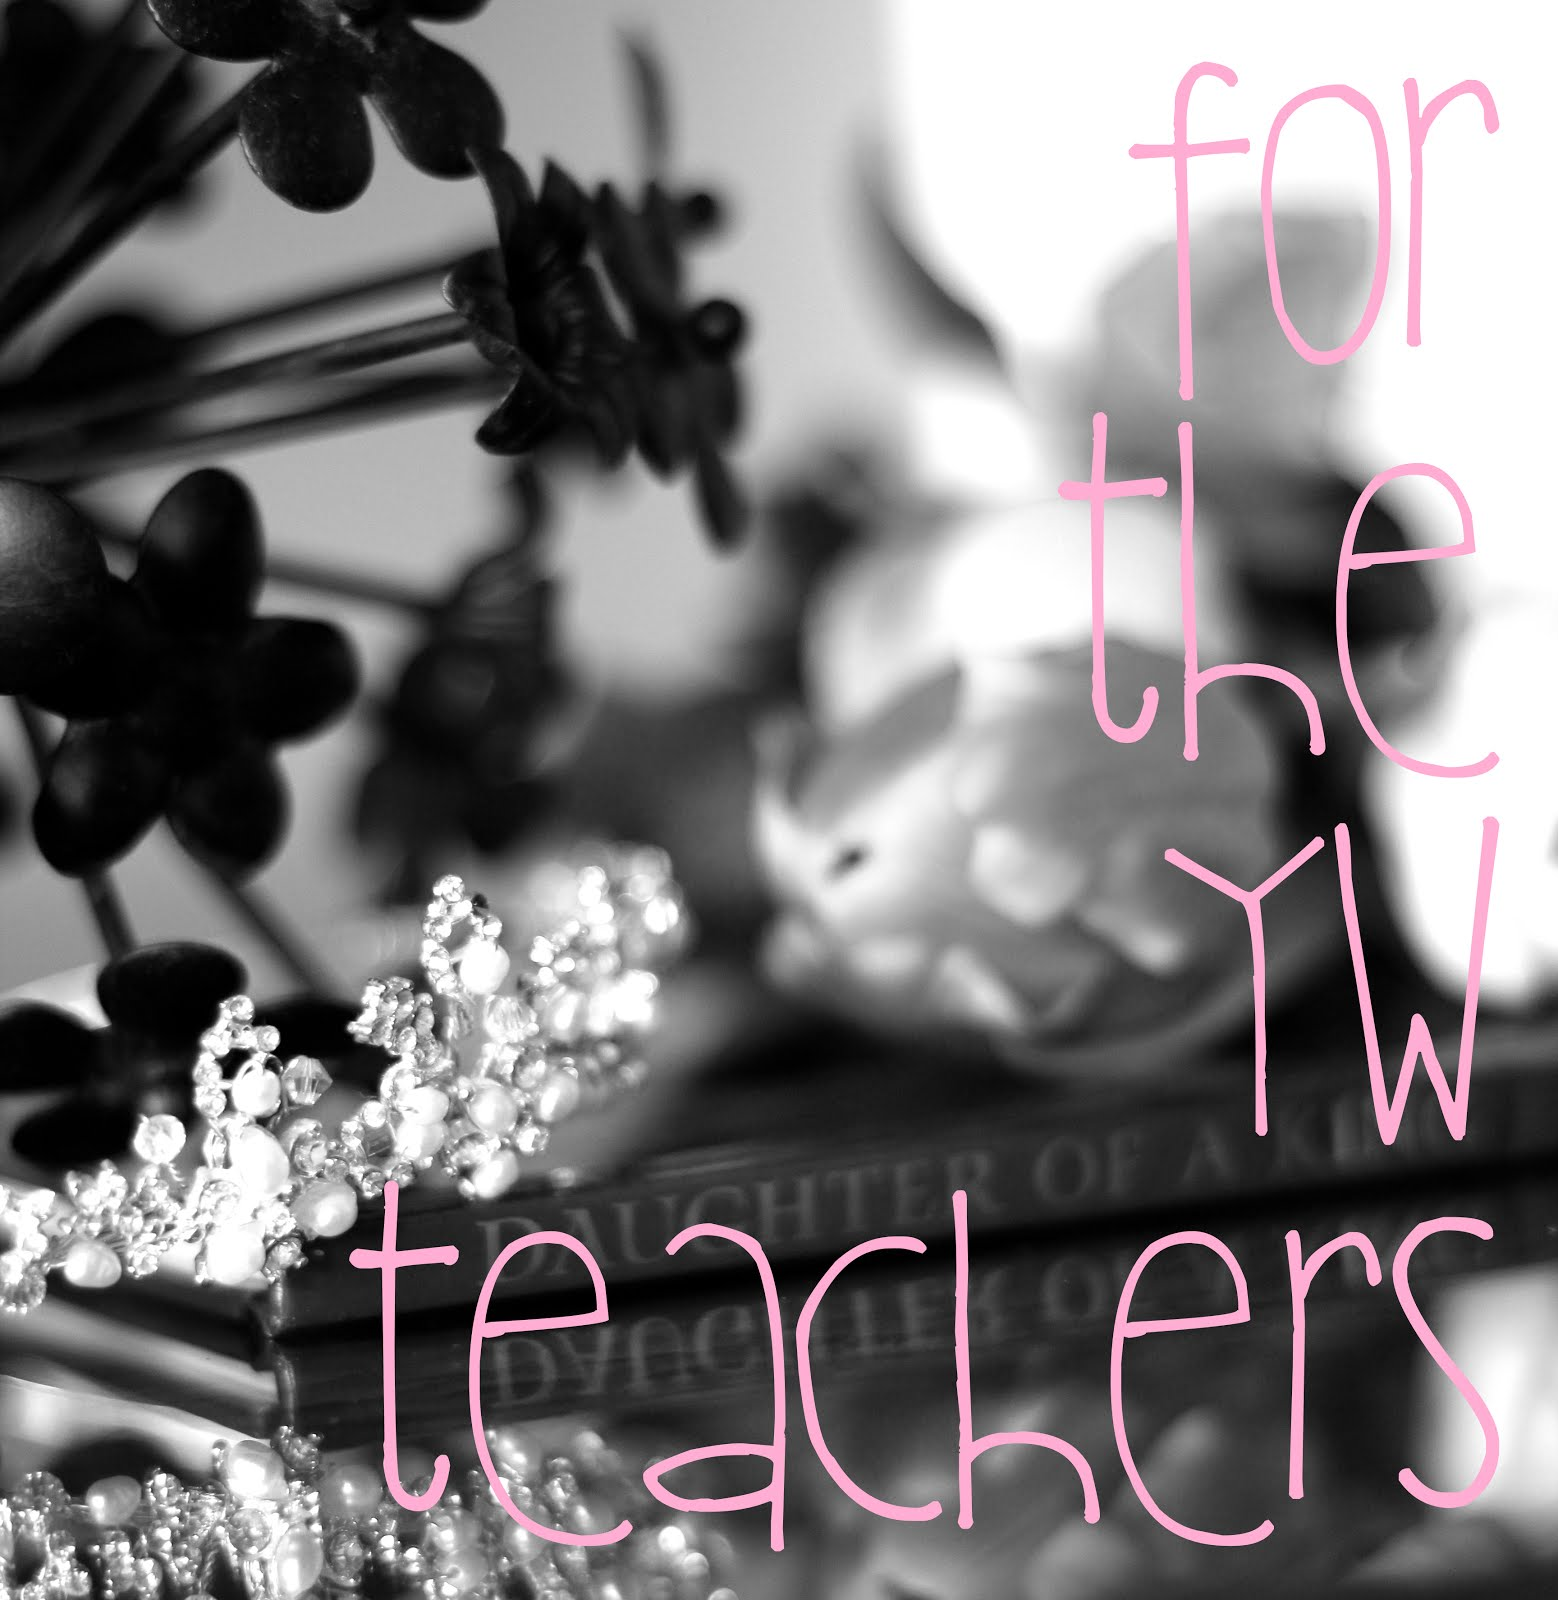 FOR THE YW TEACHERS